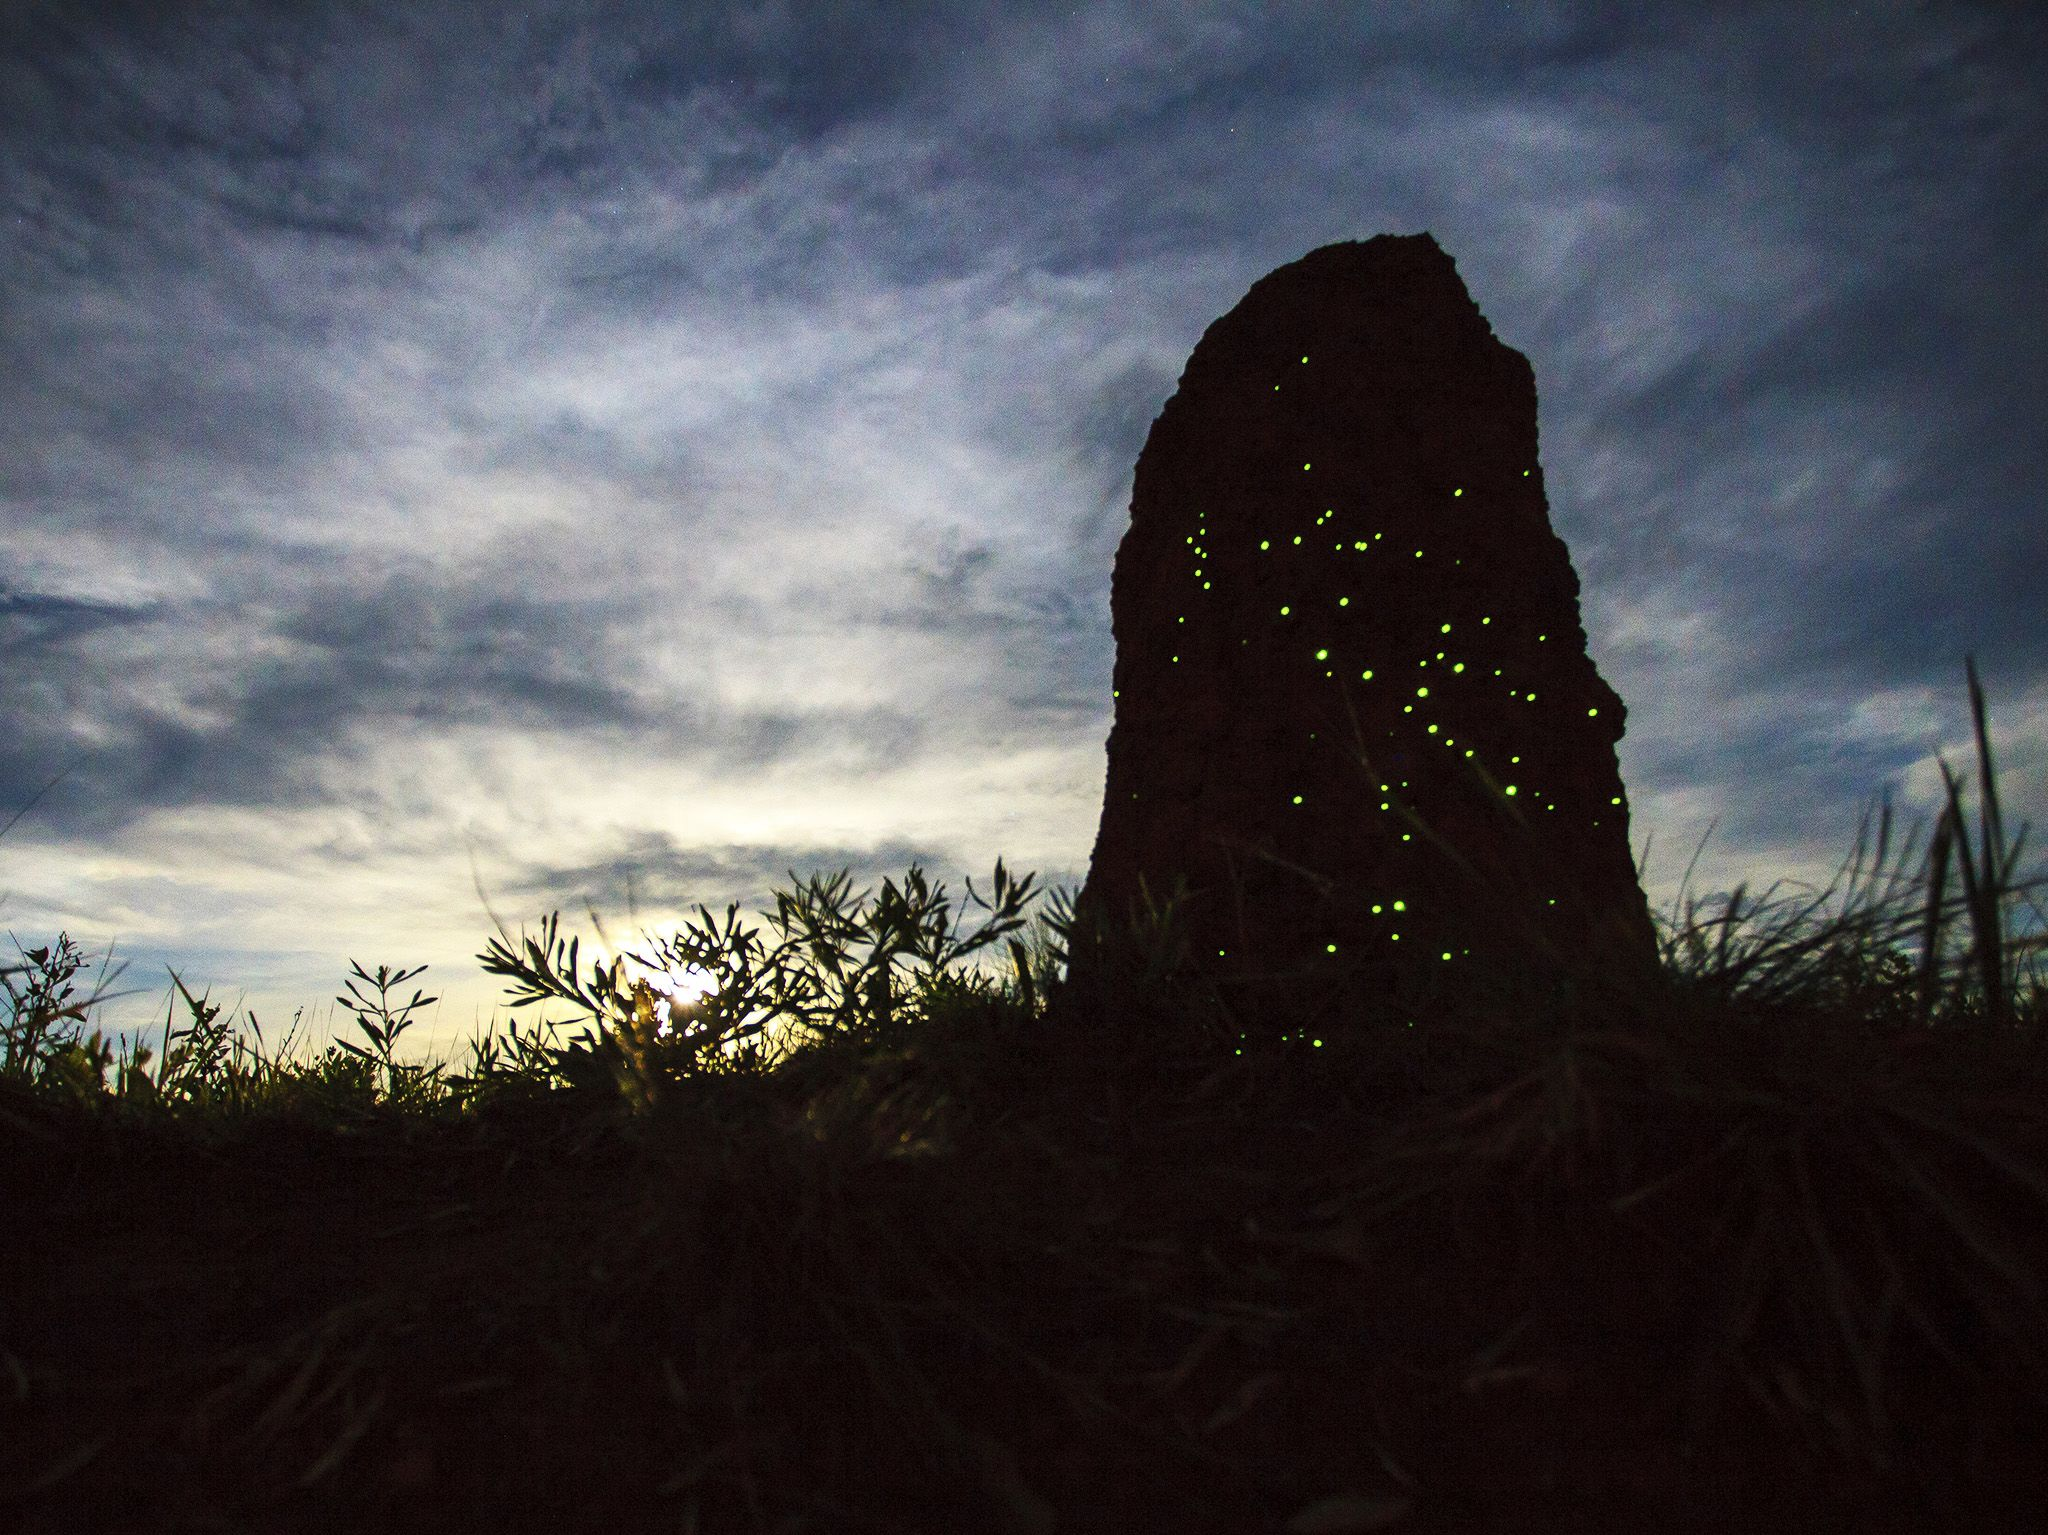 During nights, termite mounds may be the perfect place to watch a glowing spectacle: when young... [Photo of the day - February 2019]